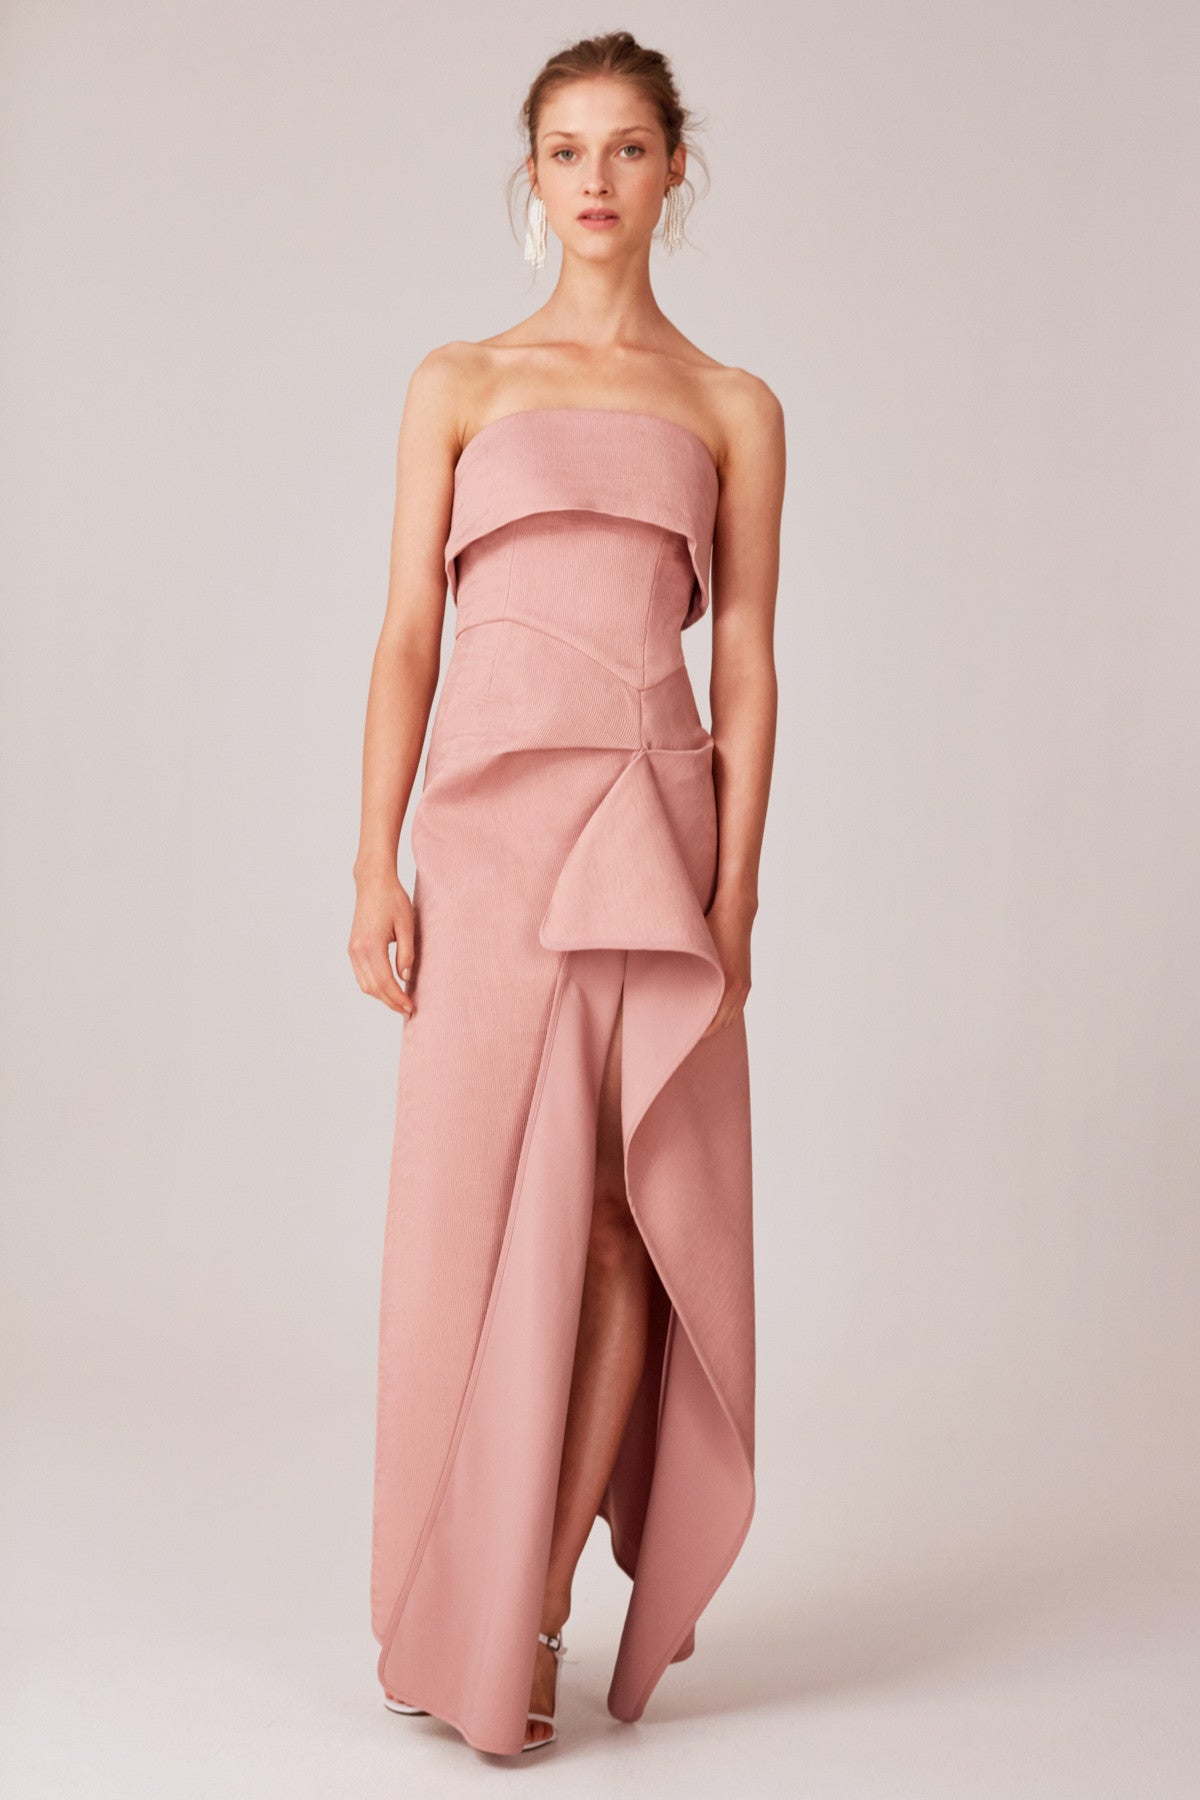 DISCRETION GOWN dusty pink